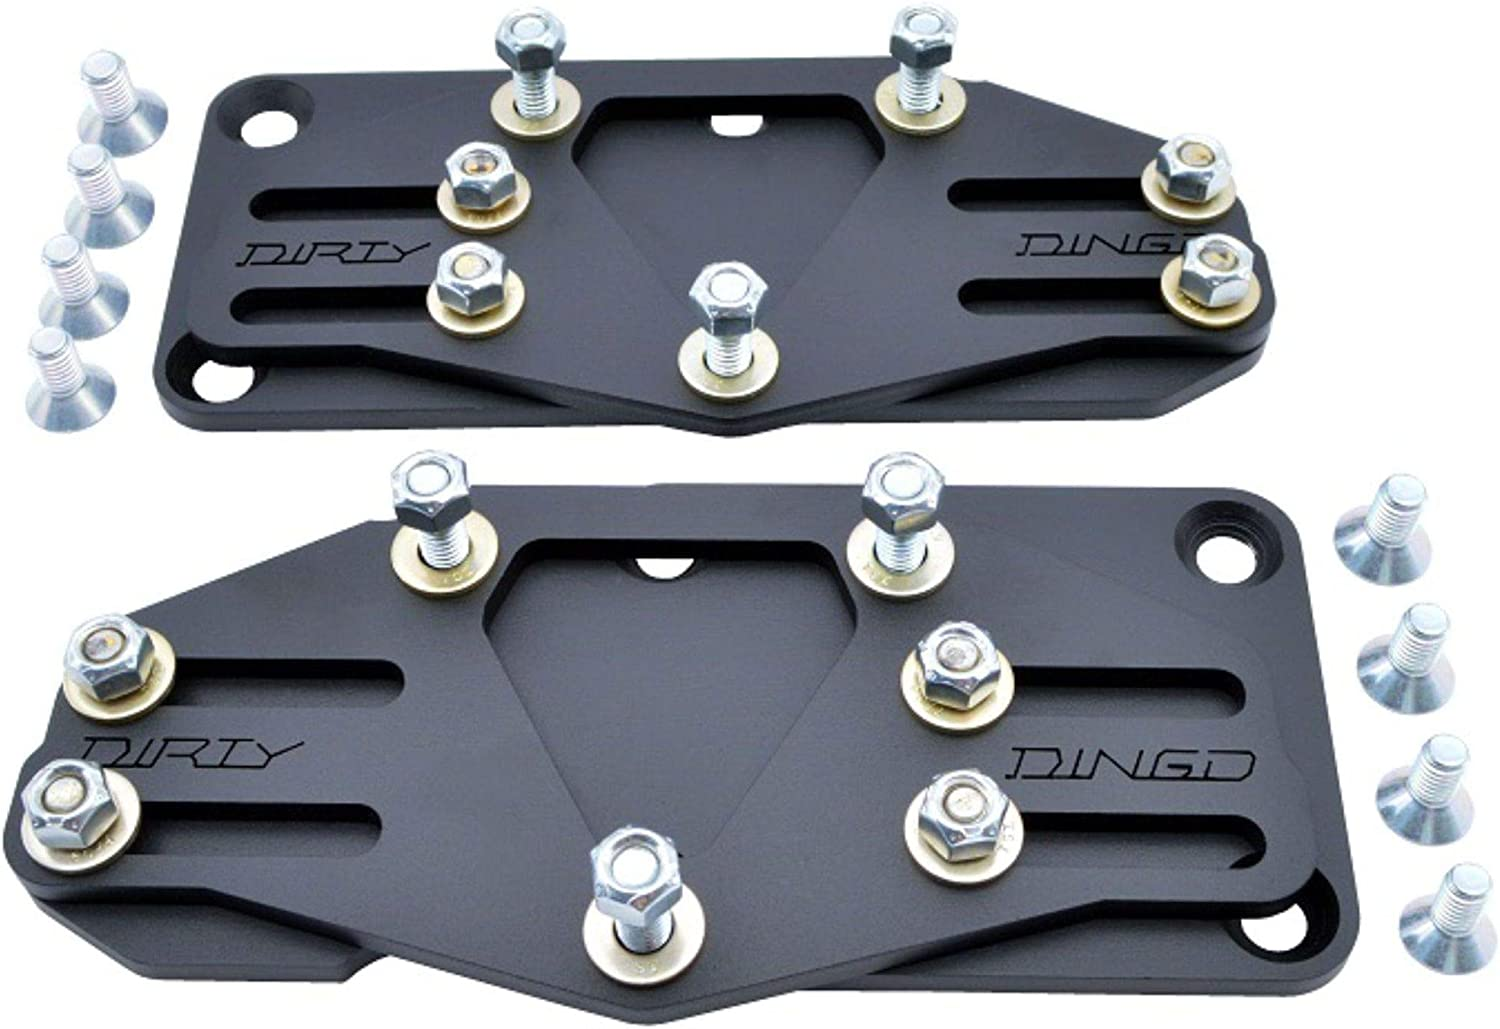 Dirty Dingo Motorsports Slider Limited Special Price SBC BBC S New Shipping Free Shipping Conversion to LS Engine